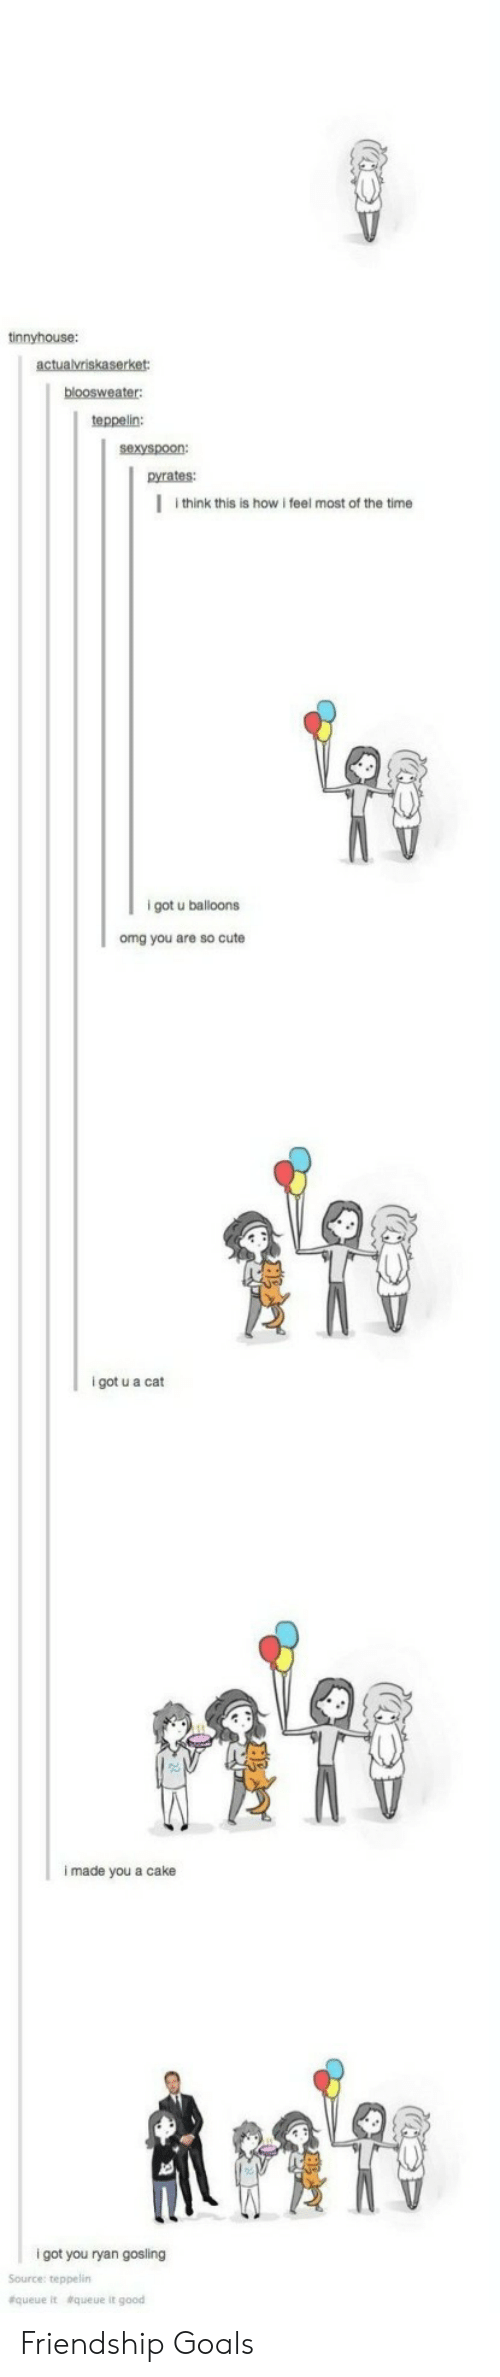 Gosling: tinnyhouse:  teppelin:  sexyspoon:  pyrates:  I think this is how i feel most of the time  9  igot u balloons  omg you are so cute  i got u a cat  i made you a cake  i got you ryan gosling  Source: teppelin  &queue  &queue it good Friendship Goals